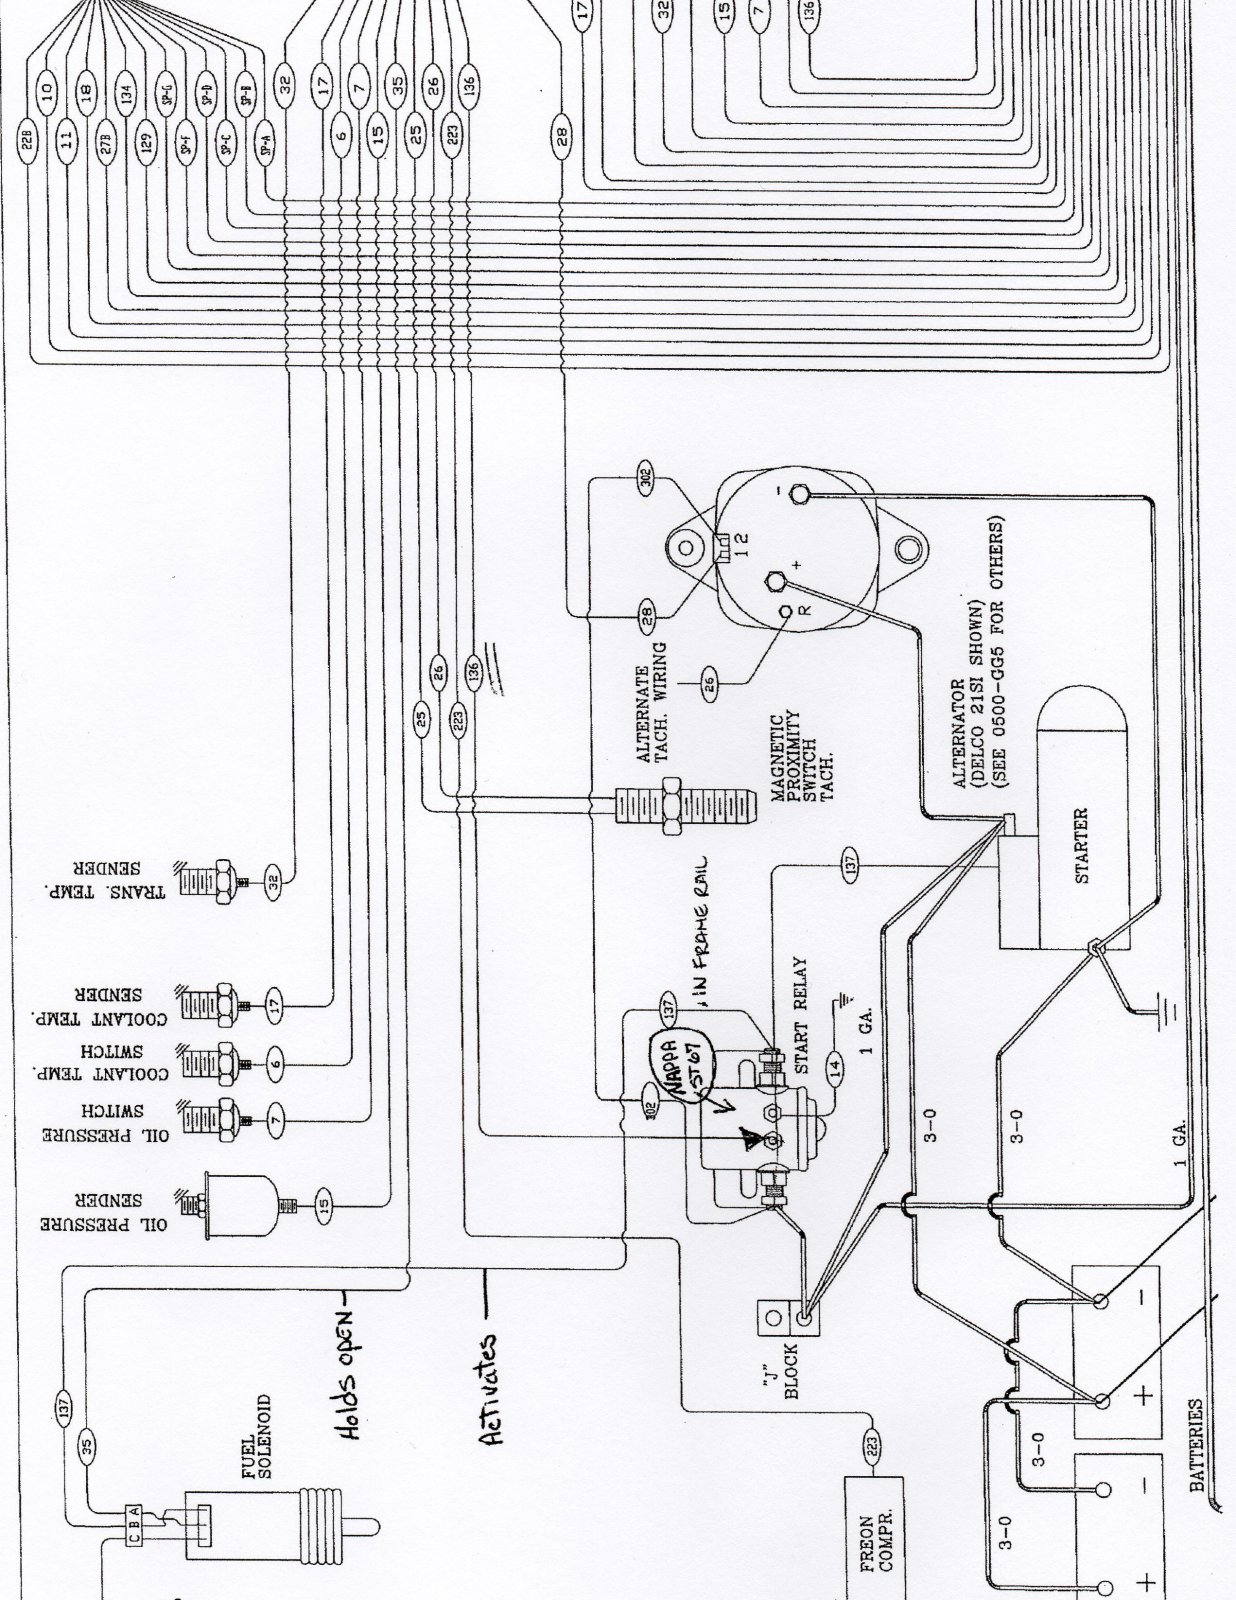 fleetwood motorhome battery wiring diagram fleetwood wiring 1988 southwind motorhome battery wiring diagram 1988 auto wiring